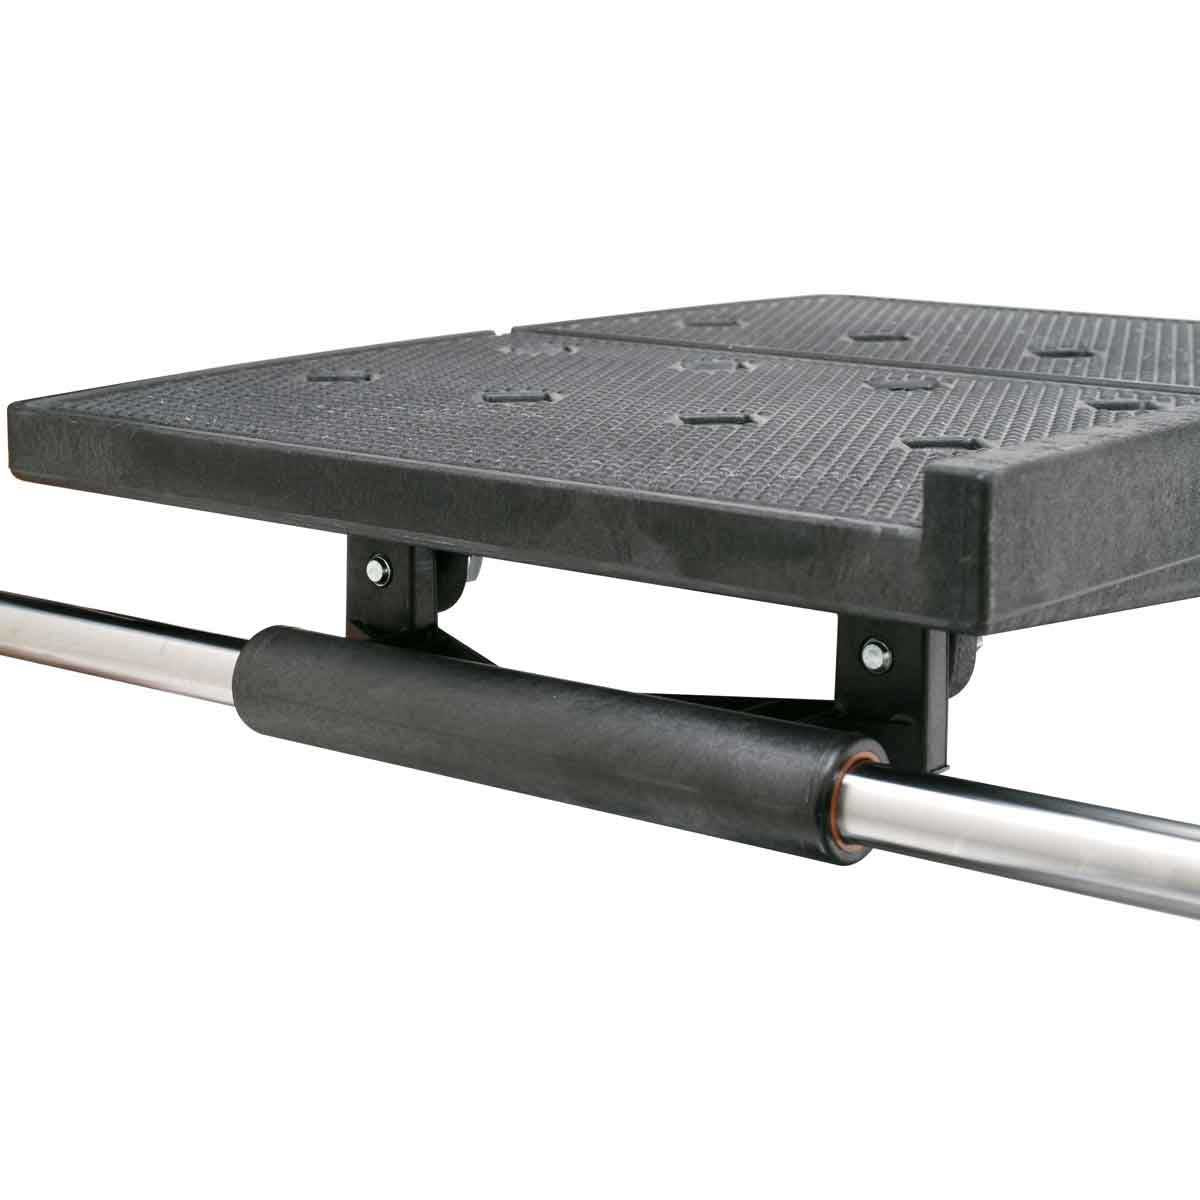 mk-370 tile saw linear bearing assembly on carriage tray